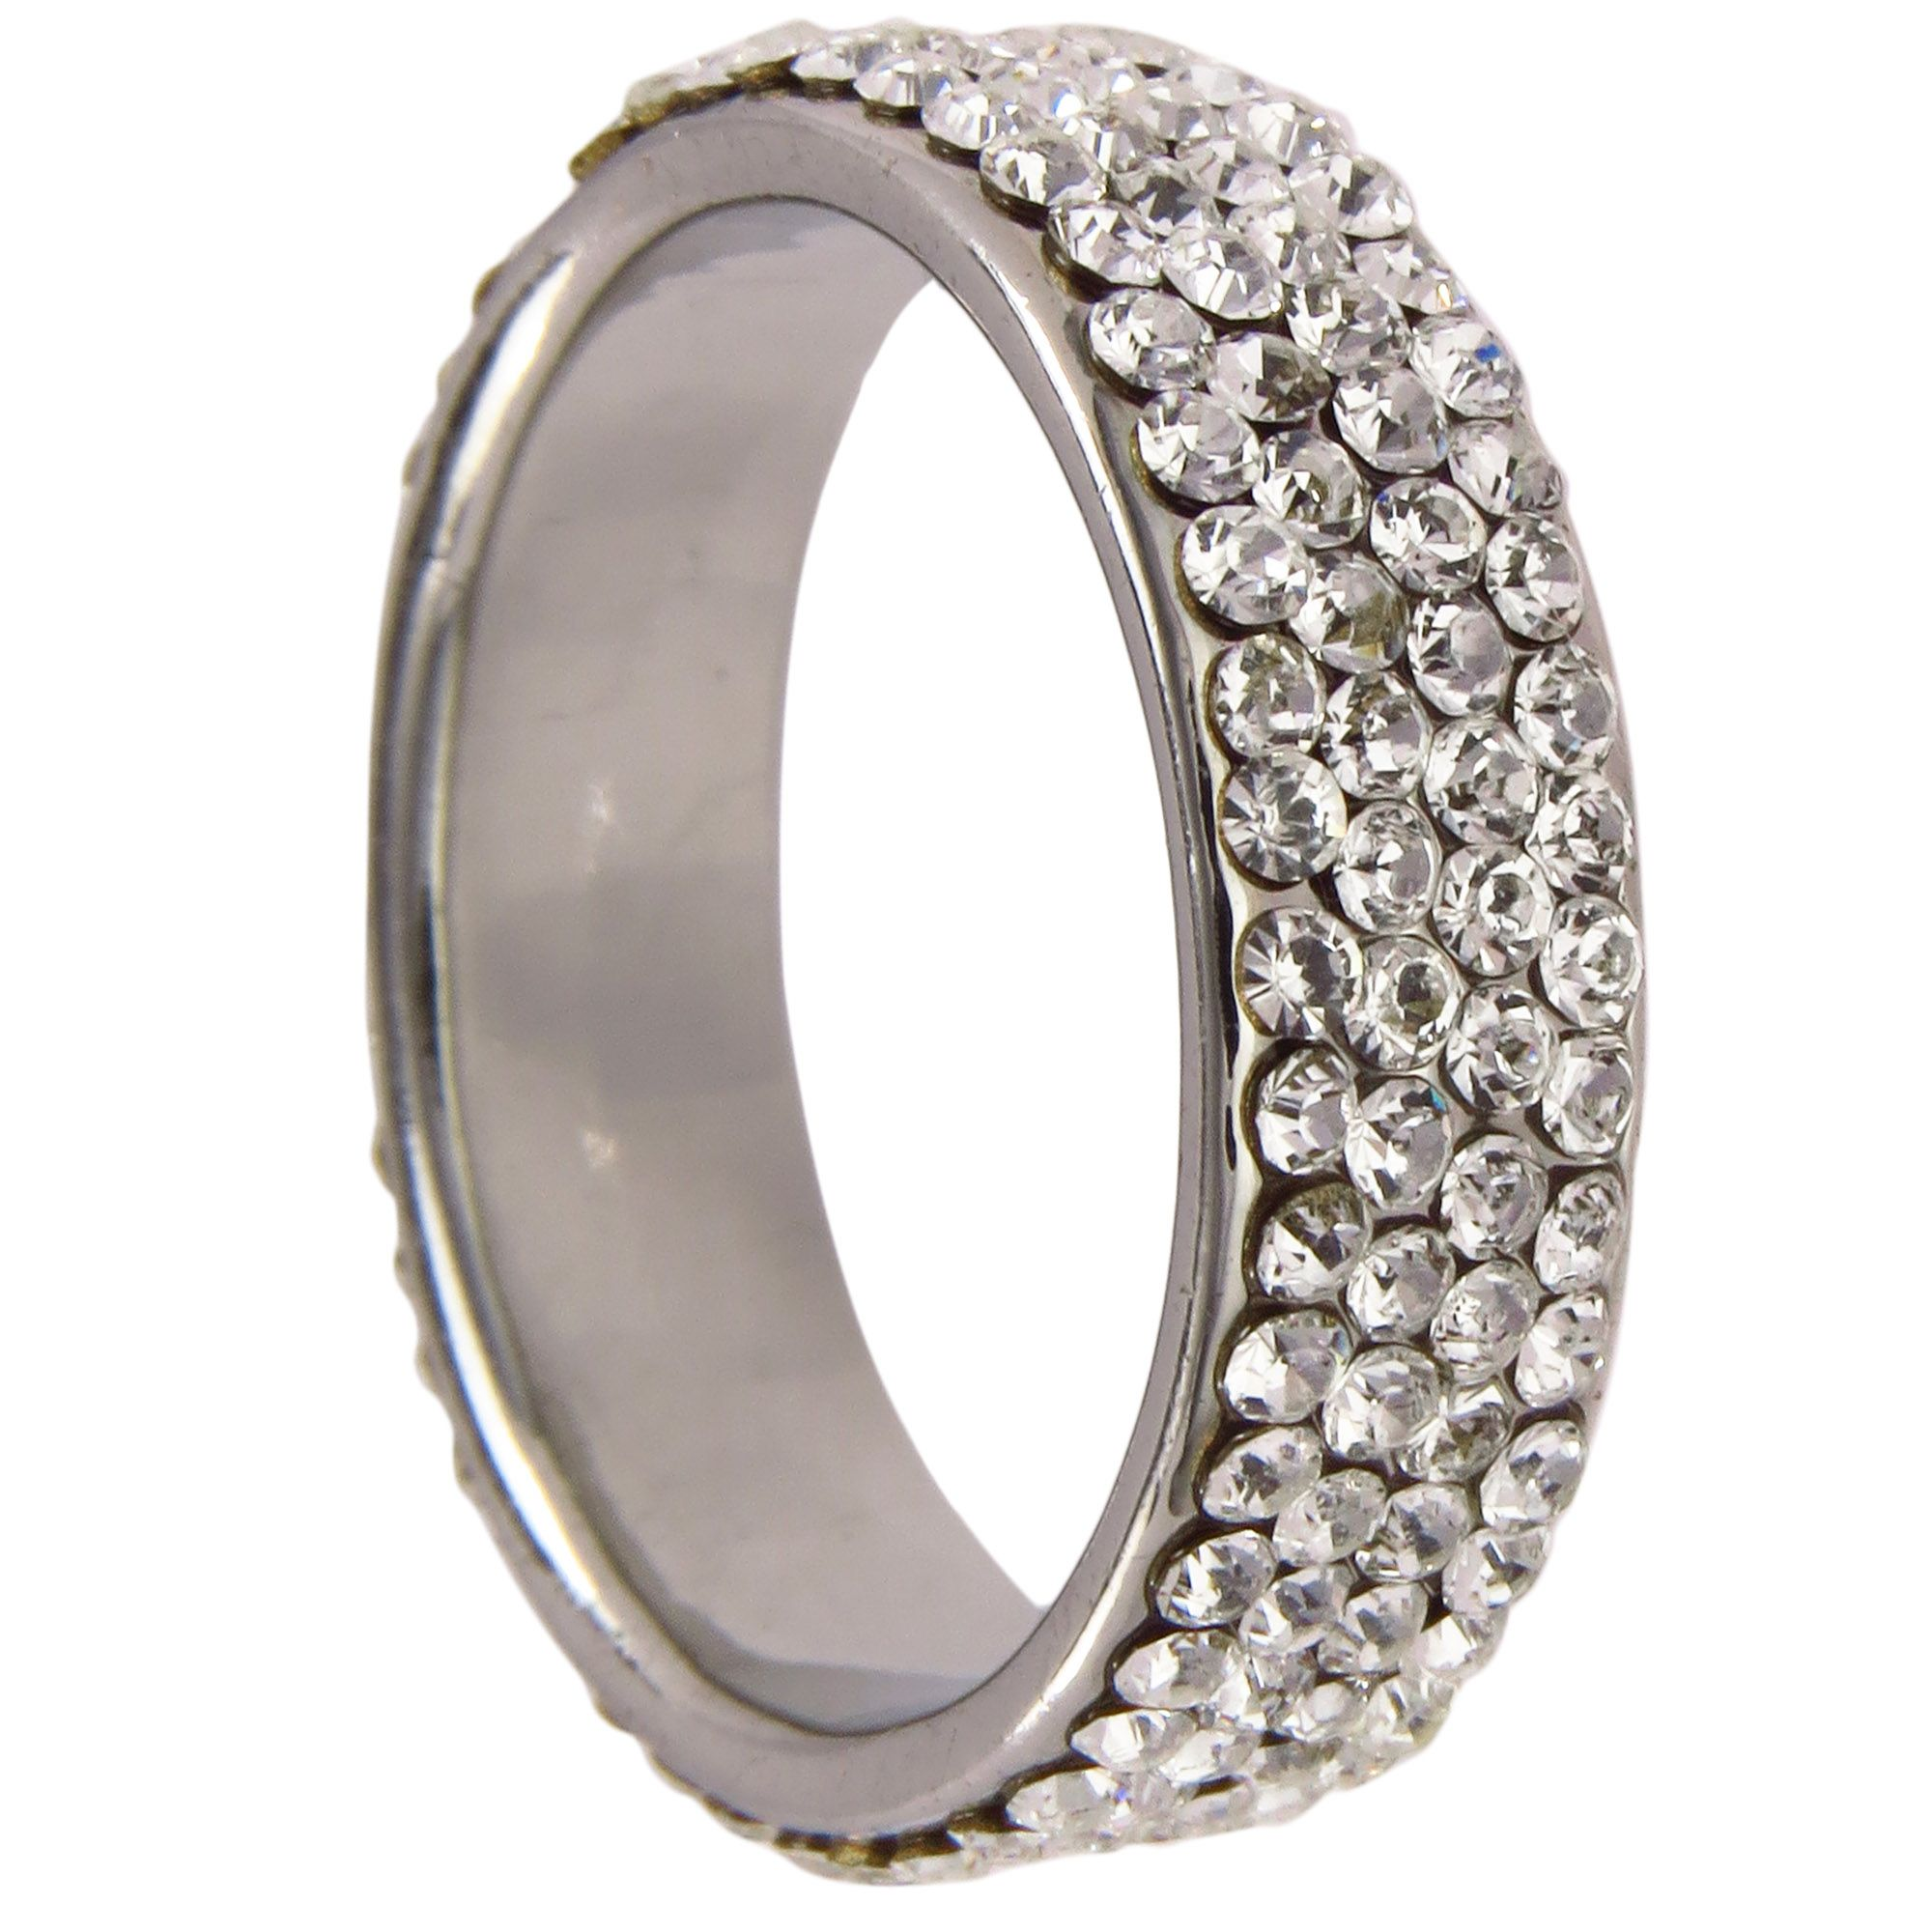 rings diamond jewellery ksvhs wedding designs beautiful silver pewter ring